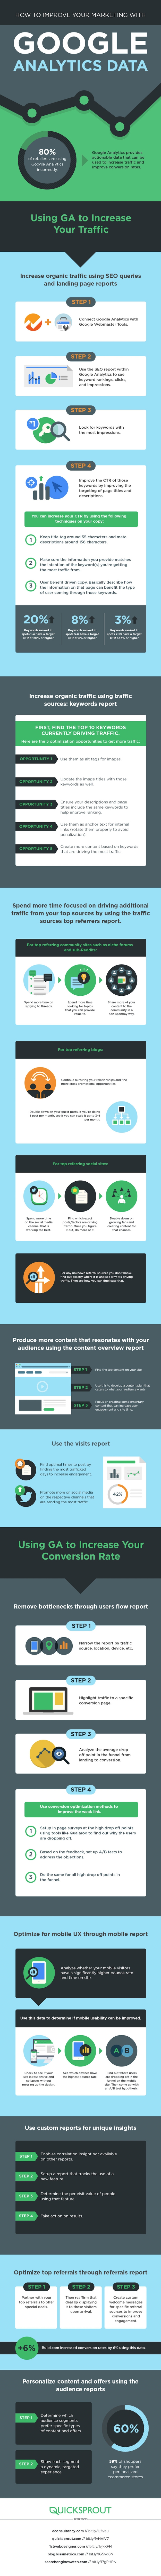 google_analytics_infographic